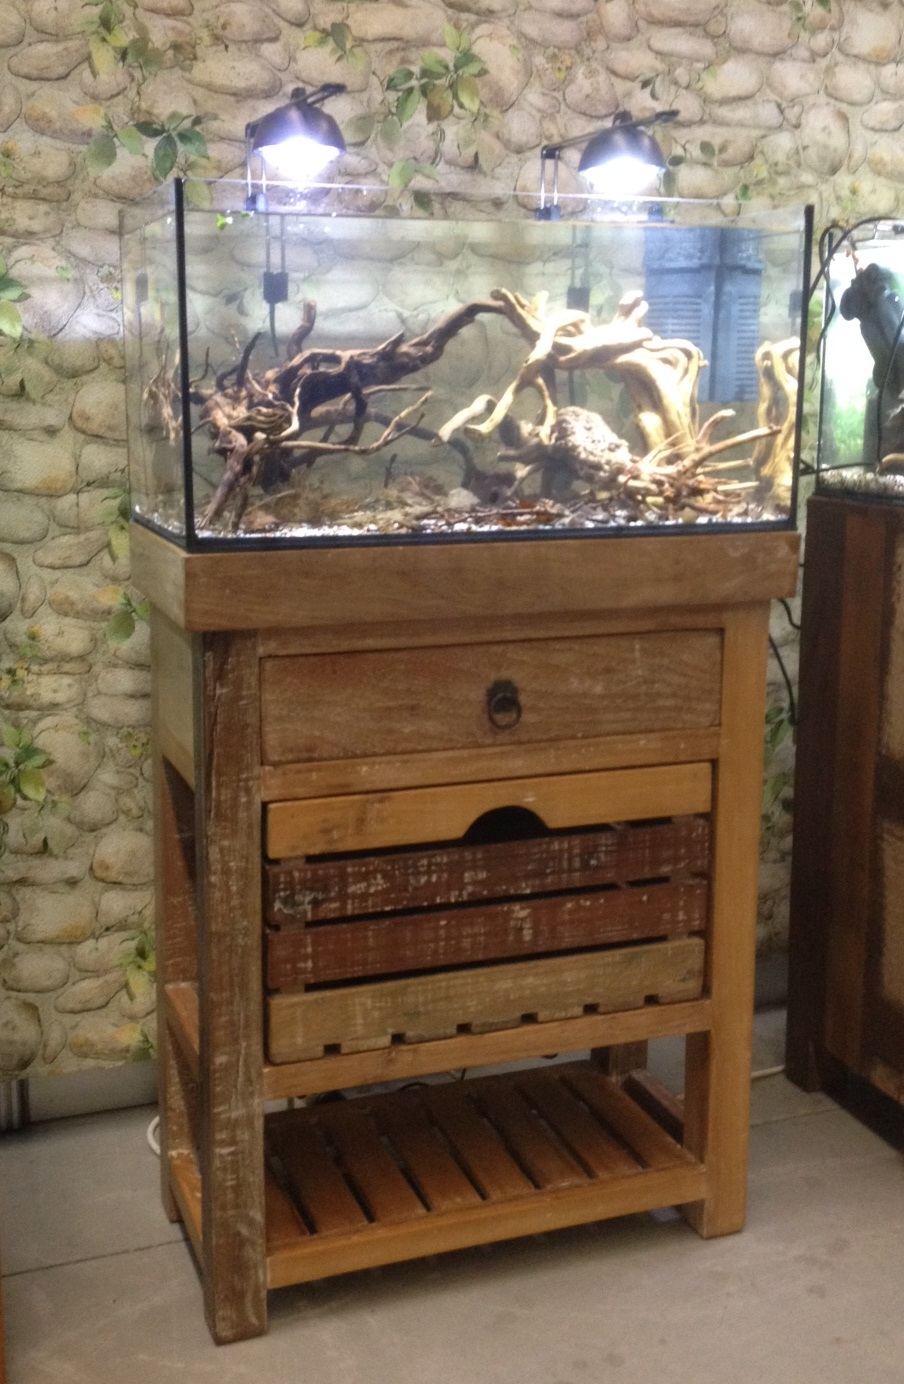 Aqua Ambiente Blog: Cabinet for aquarium set 60x30 cm ...